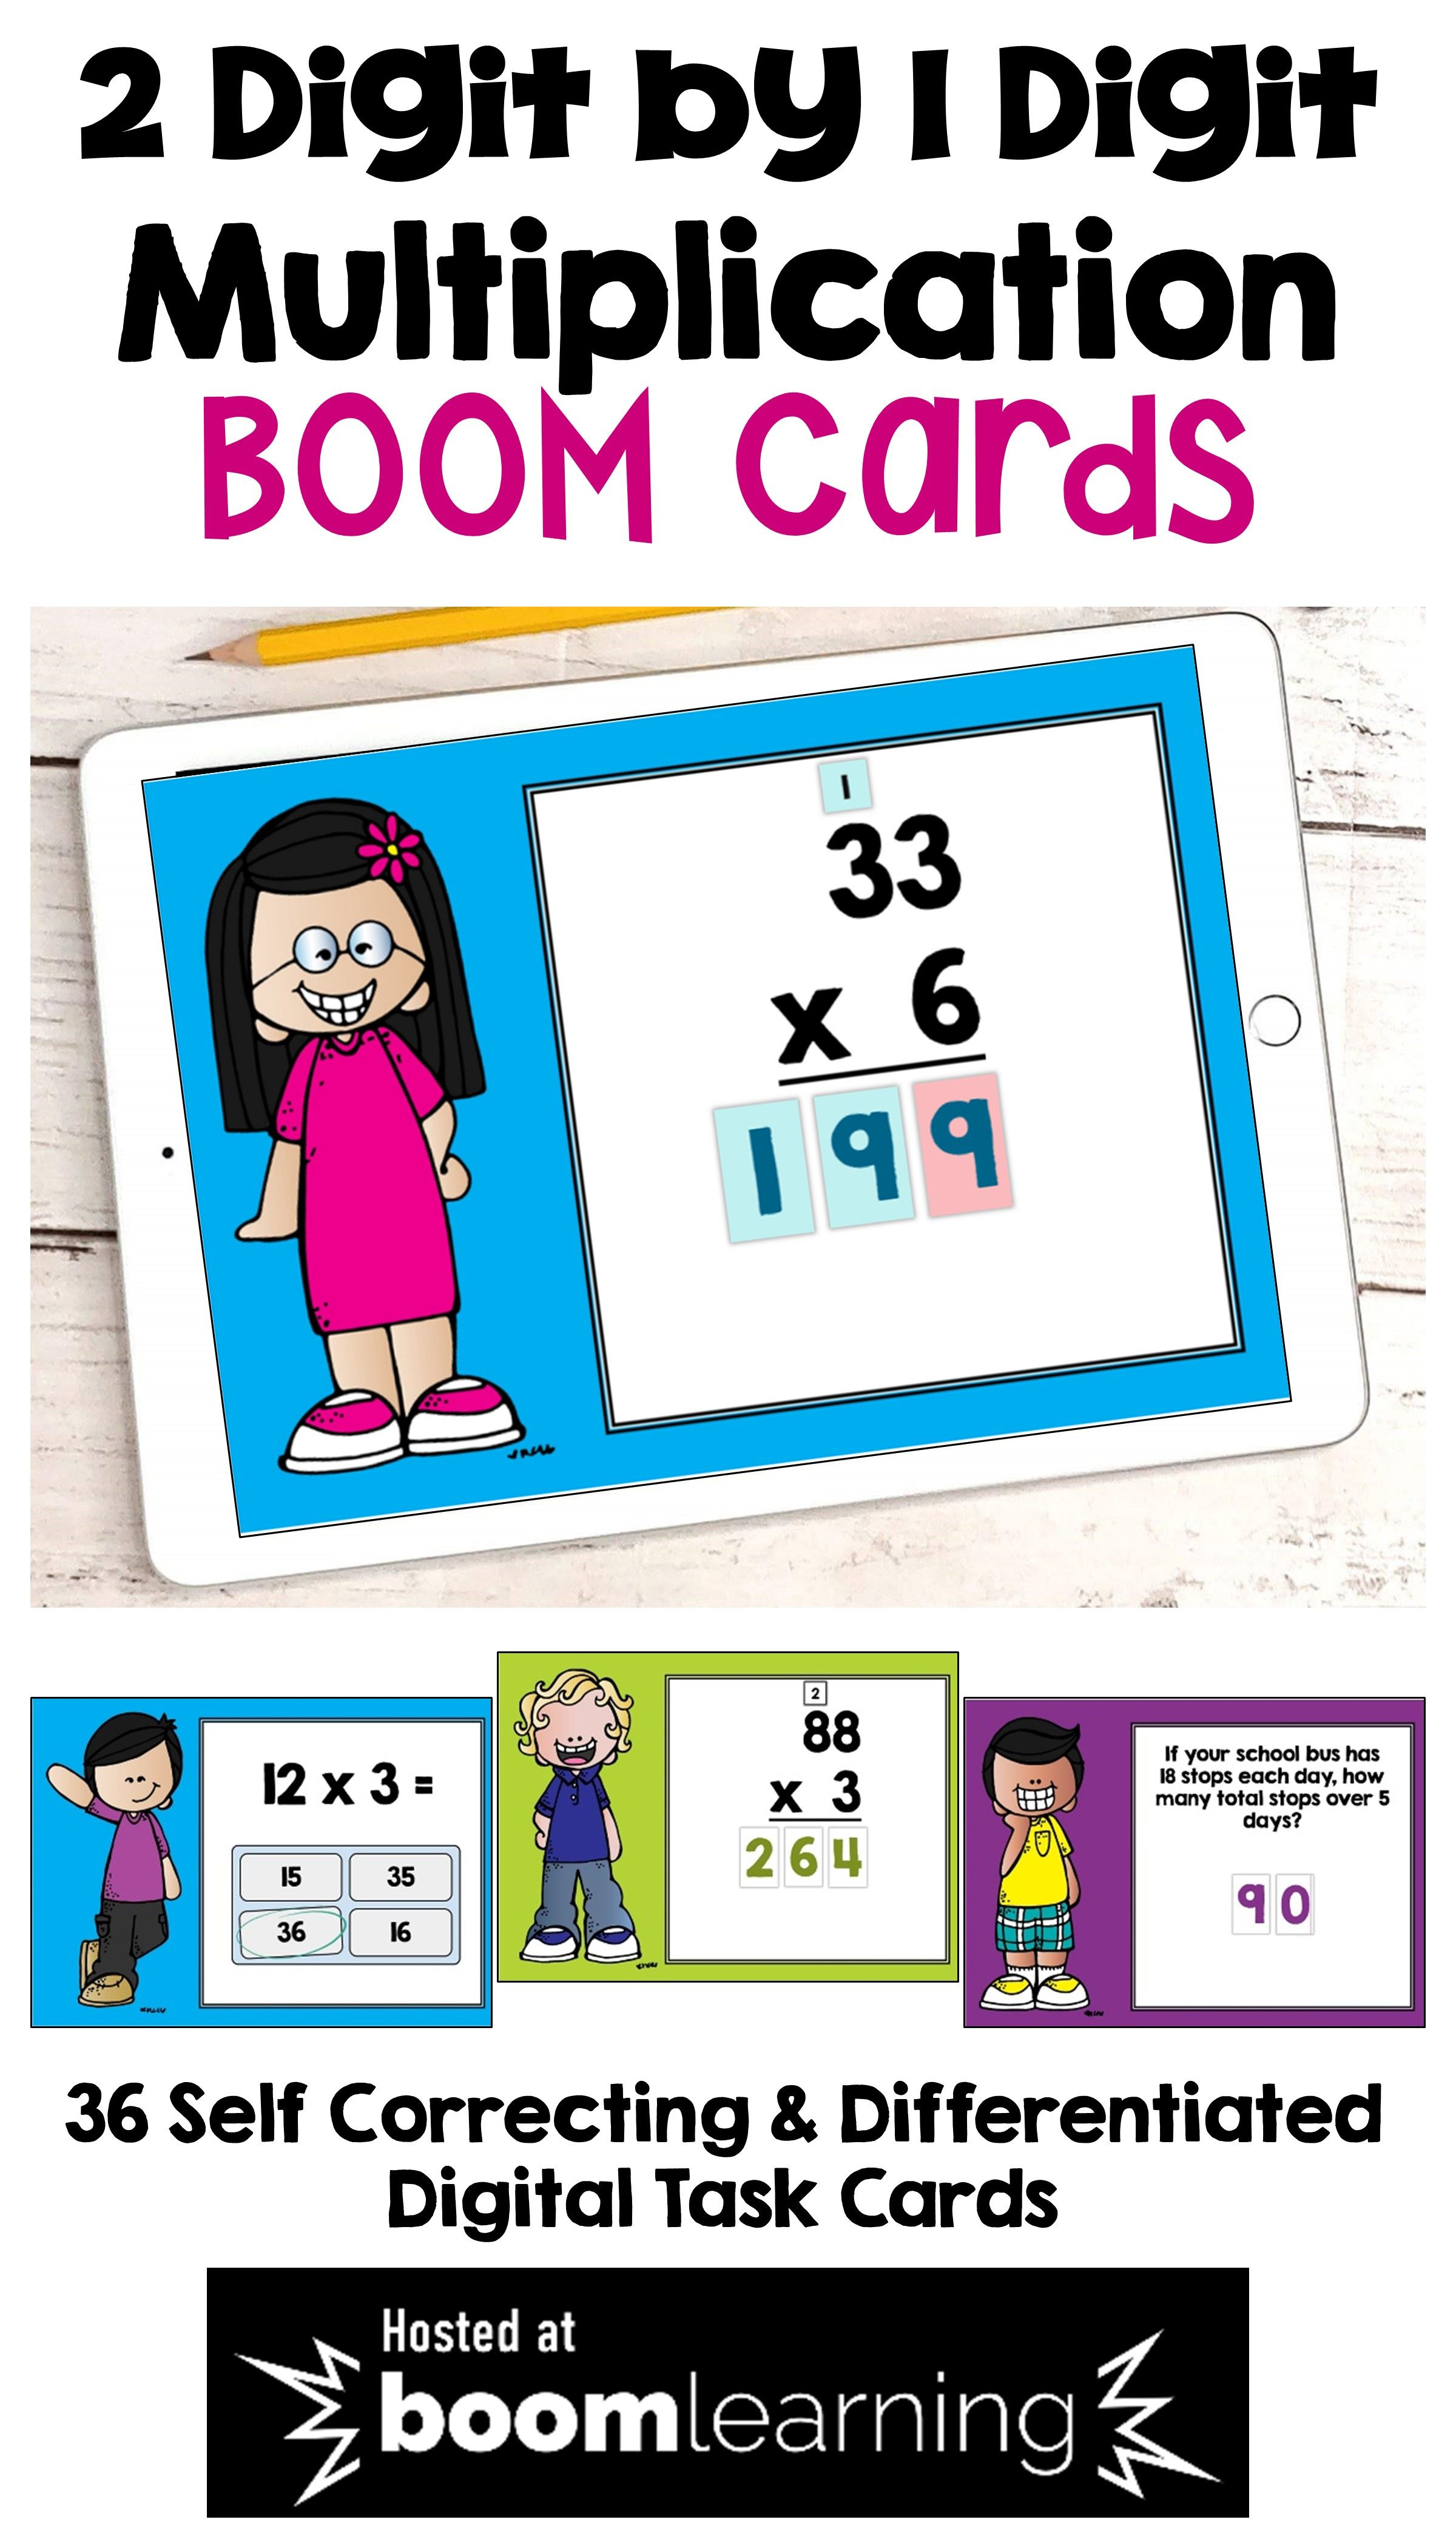 Multiplication Boom Cards For 2 Digit By 1 Digit